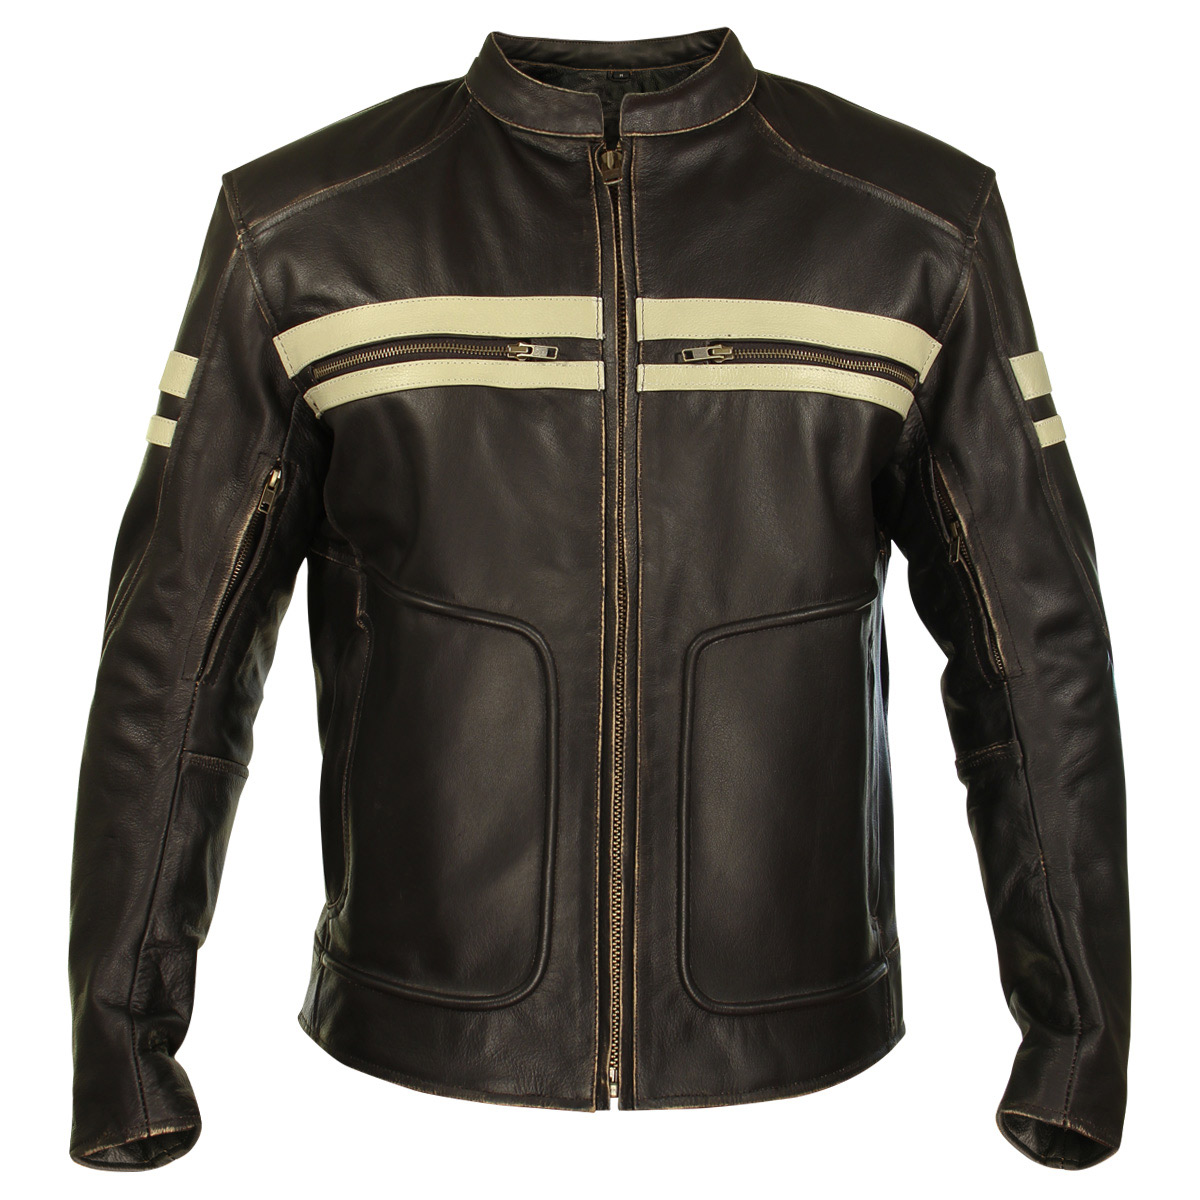 Xelement BXU165250 Mens Brown Leather Cruiser Jacket